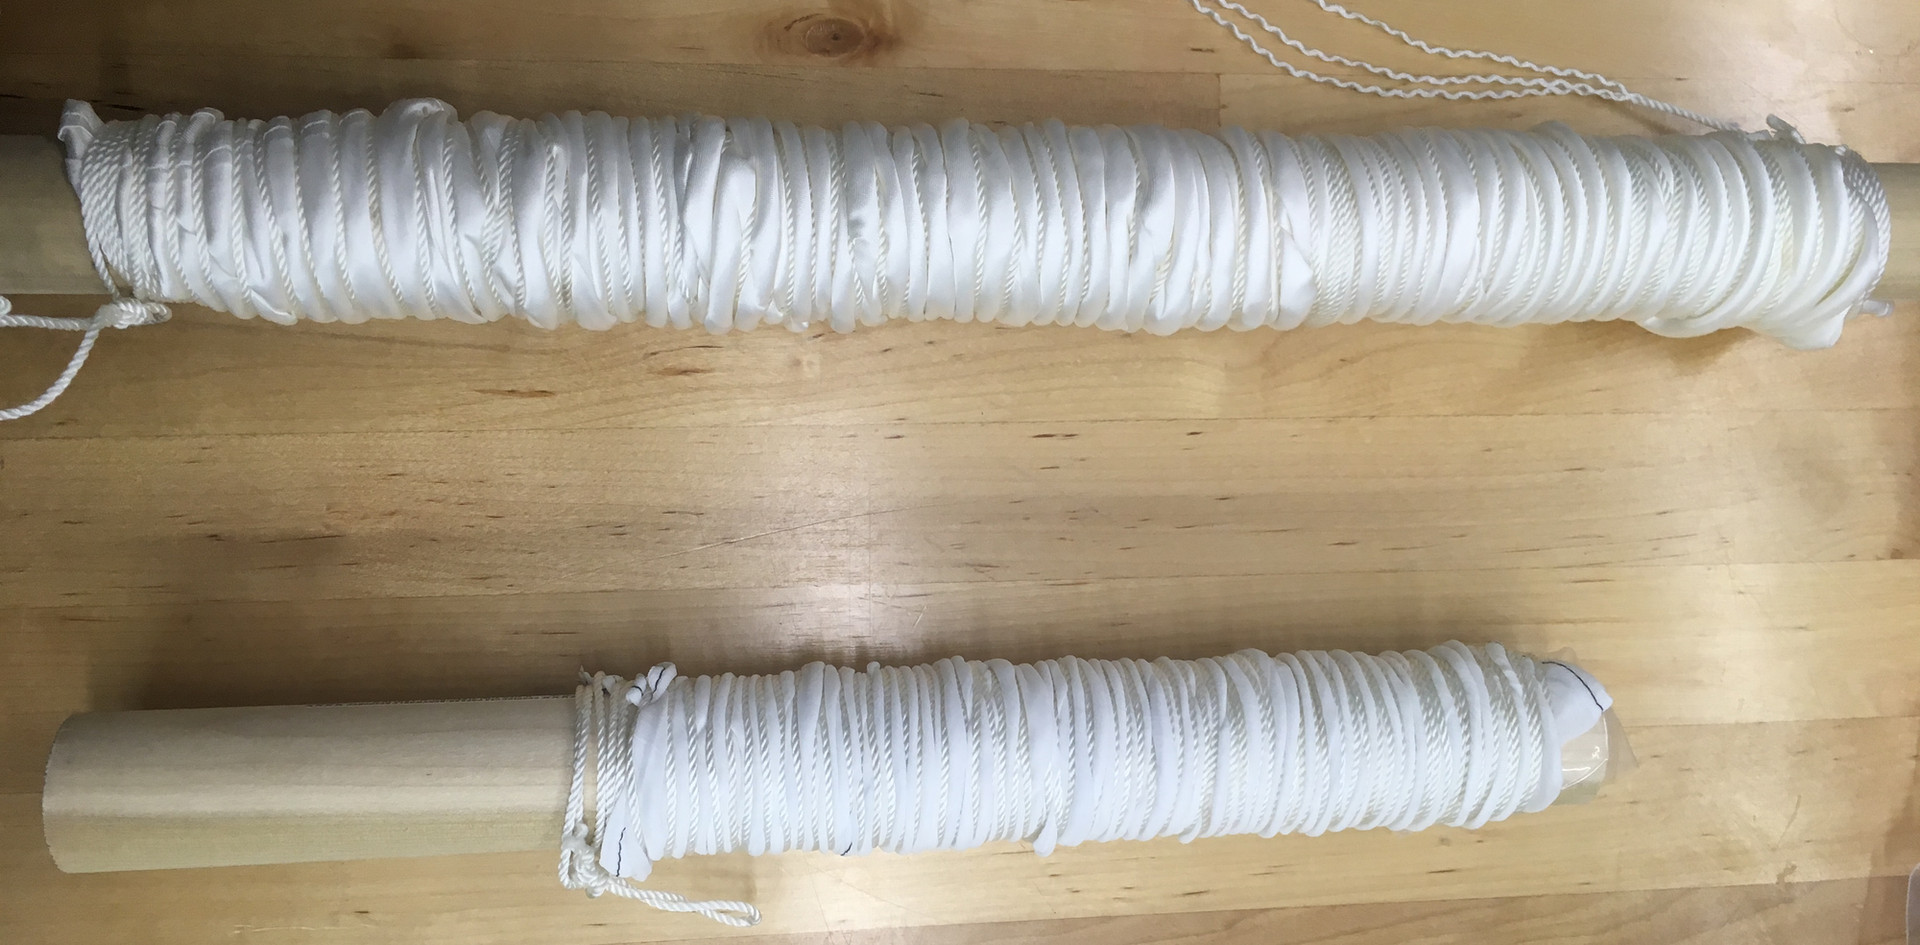 Silk is wrapped around a dowel, and thin cording wrapped on top, pushing the silk to the top of the dowel to make pleats.